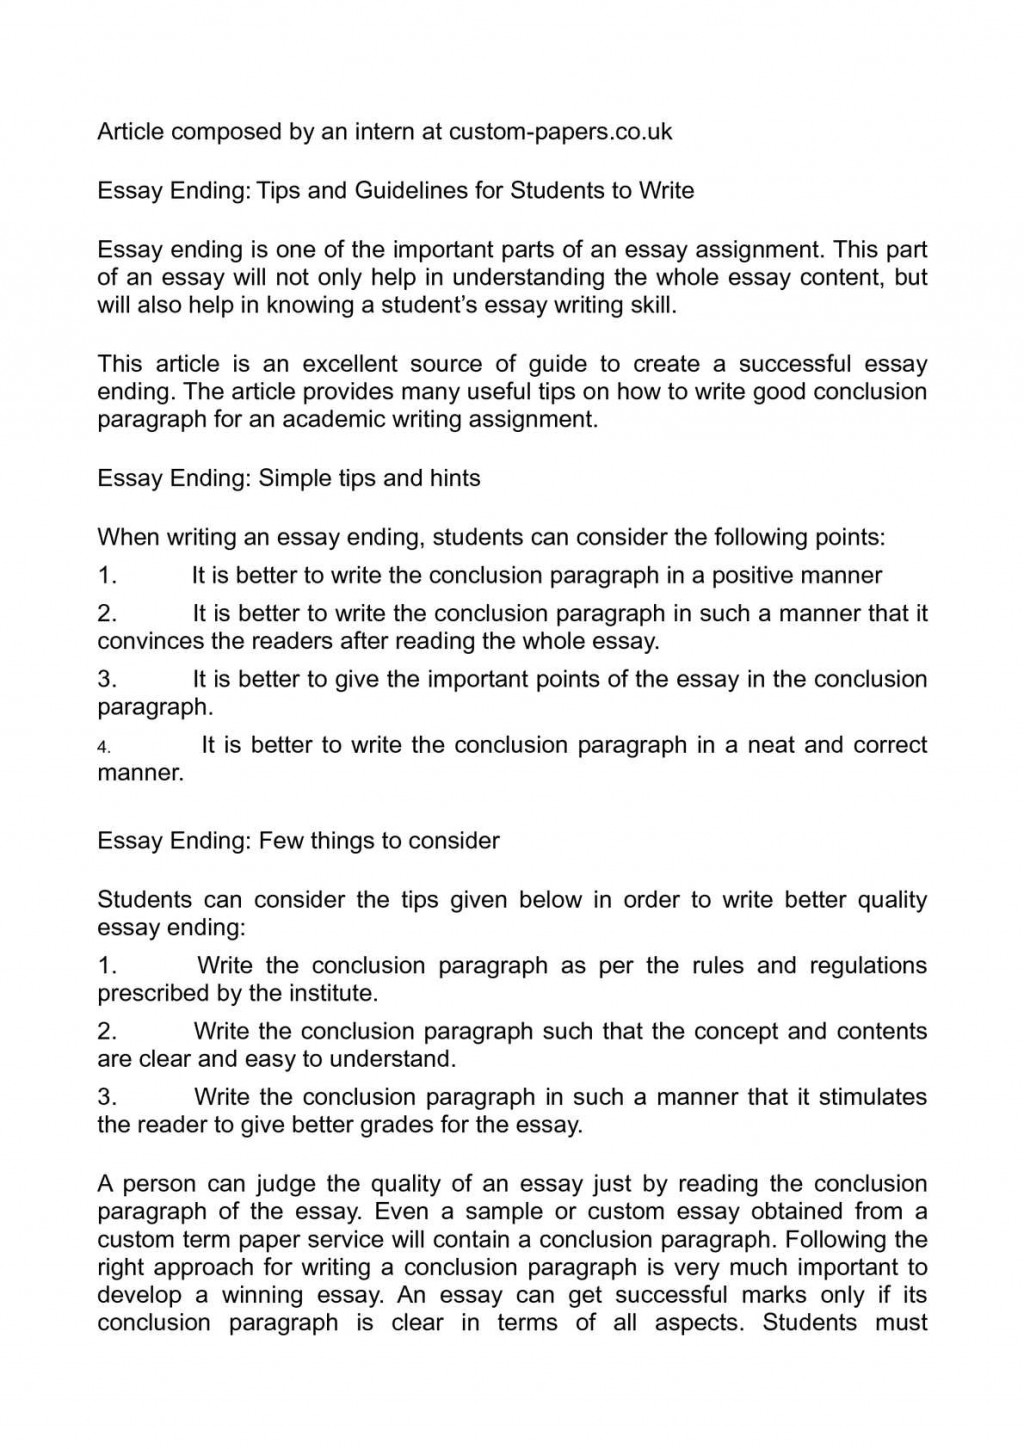 001 Parts Of An Essay Ending Tips And Guidelines For Students To Write Writing Persuasi Pdf Three Persuasive Stupendous Quizlet Worksheet Large